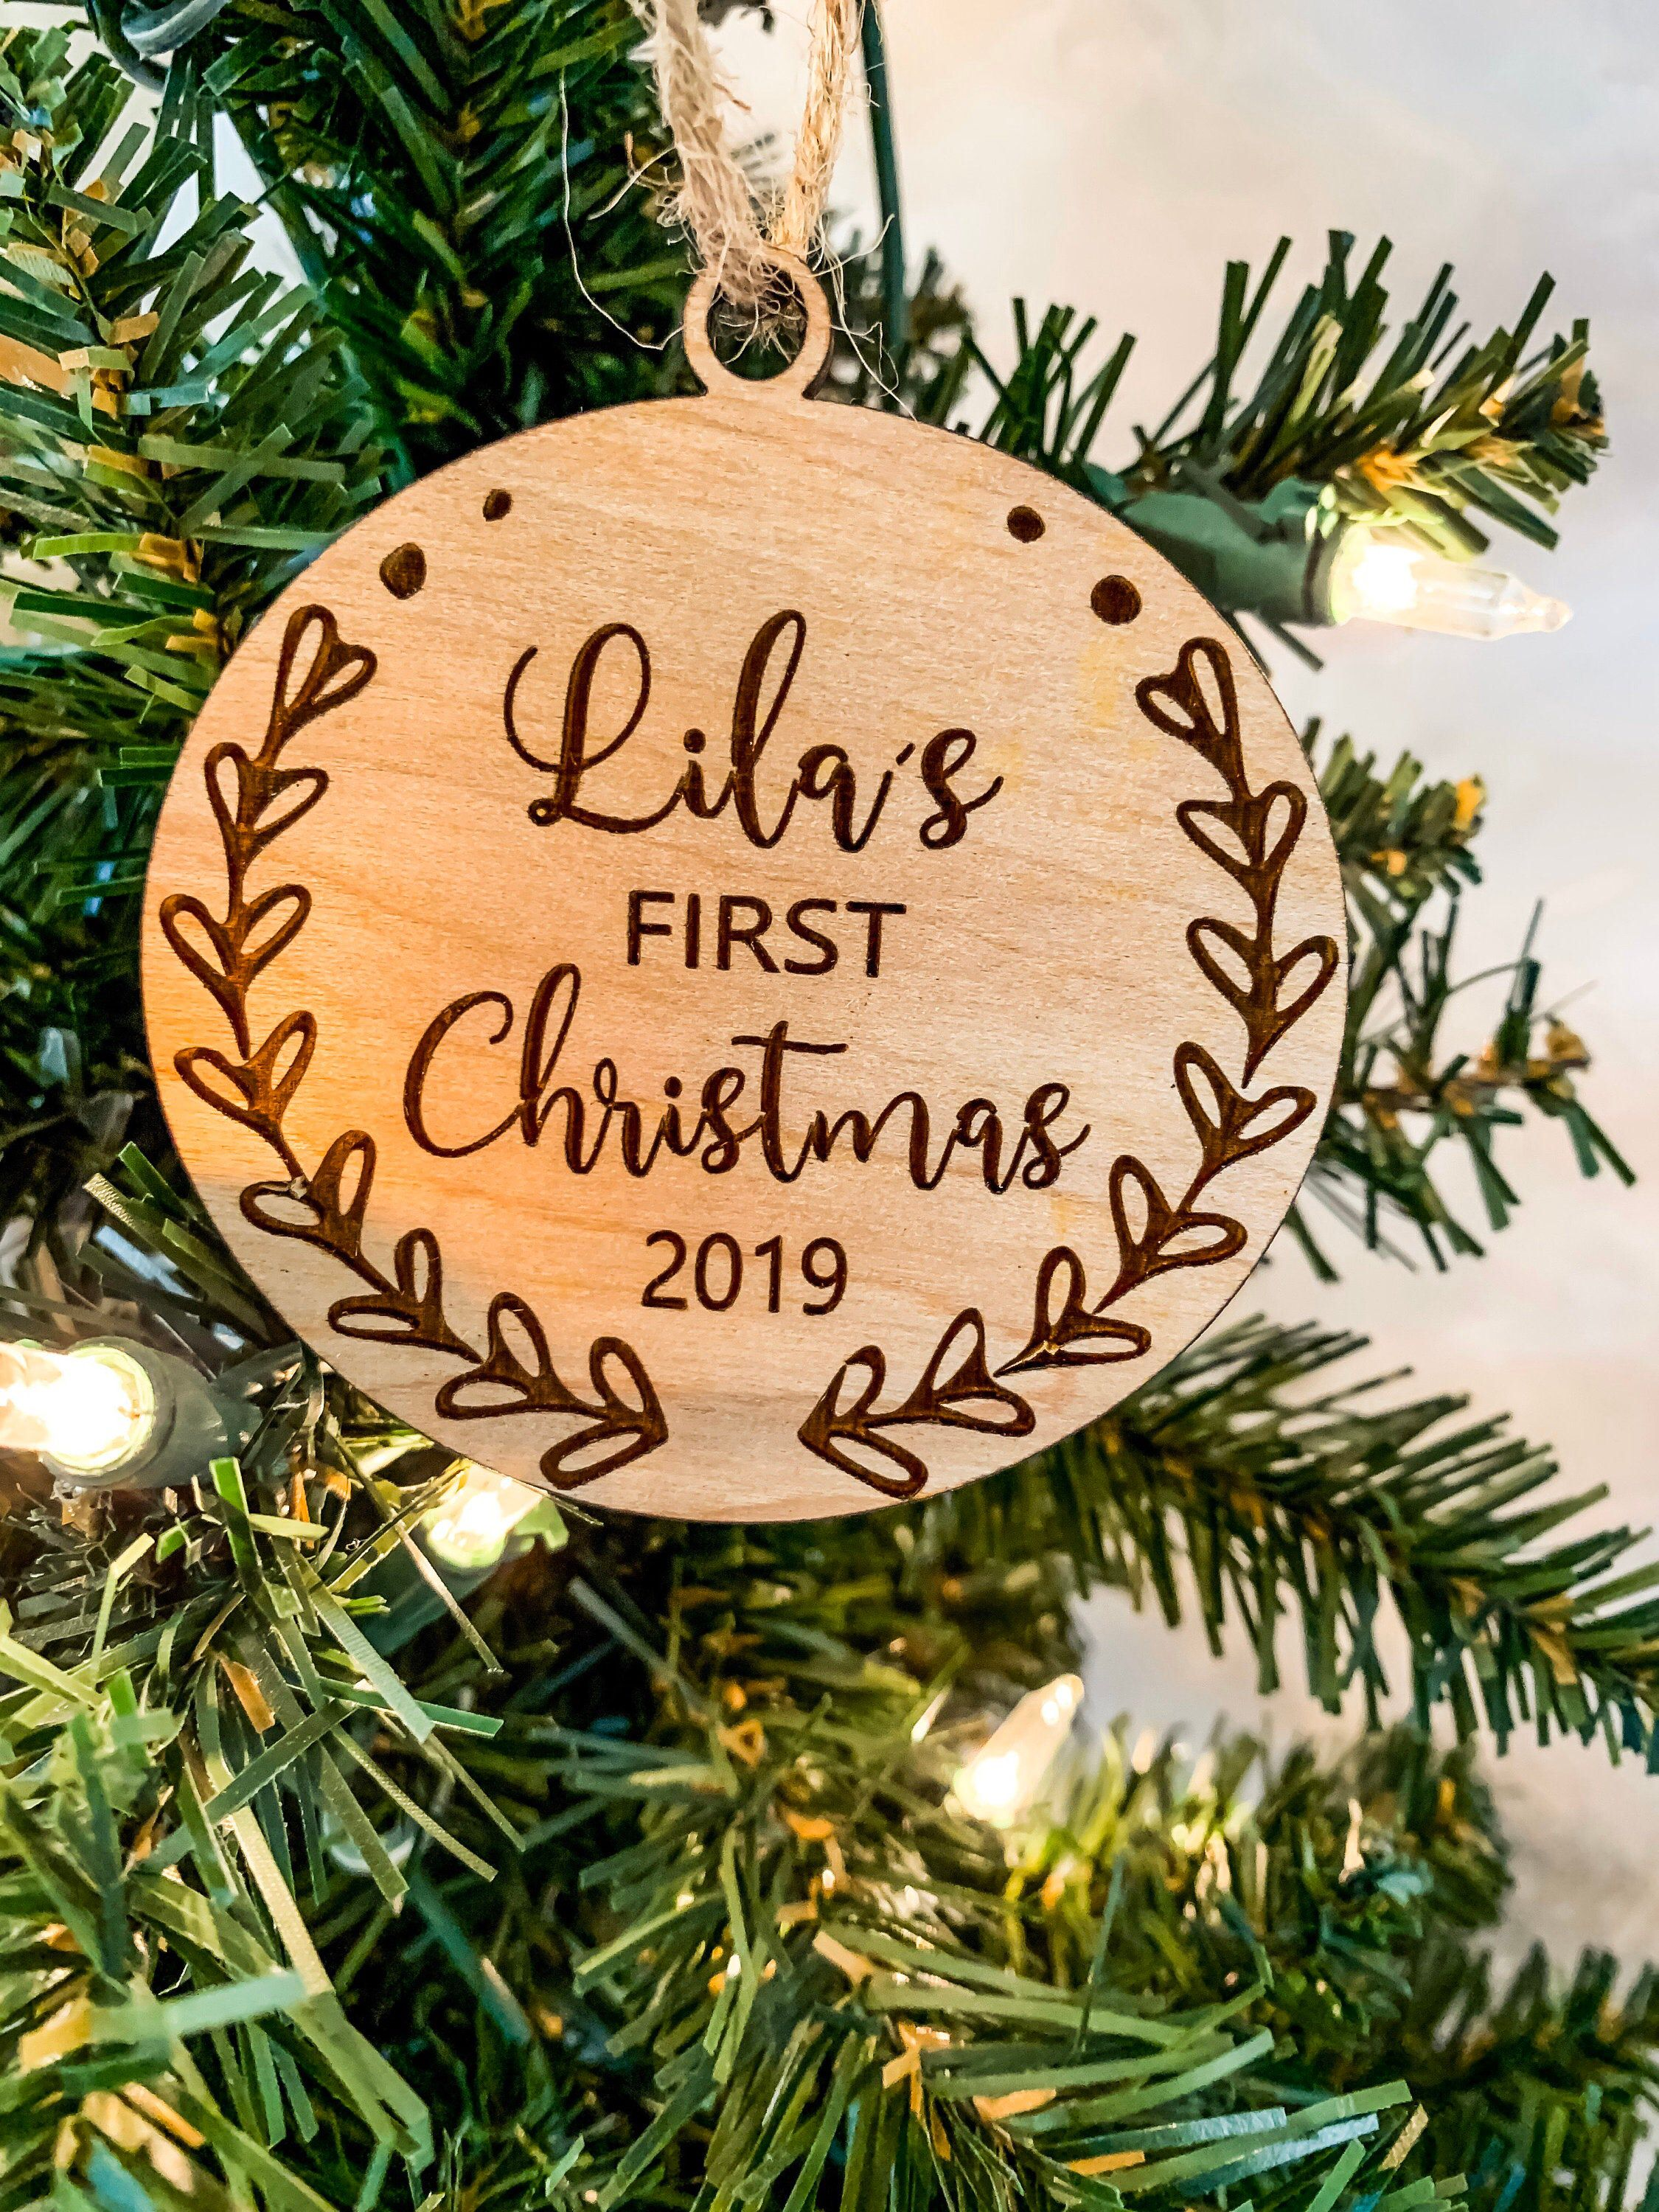 My First Christmas Ornament 2019 Personalised Baby/'s 1st Christmas Bauble Our First Christmas Personalized Xmas Custom Gift Tree Decorations